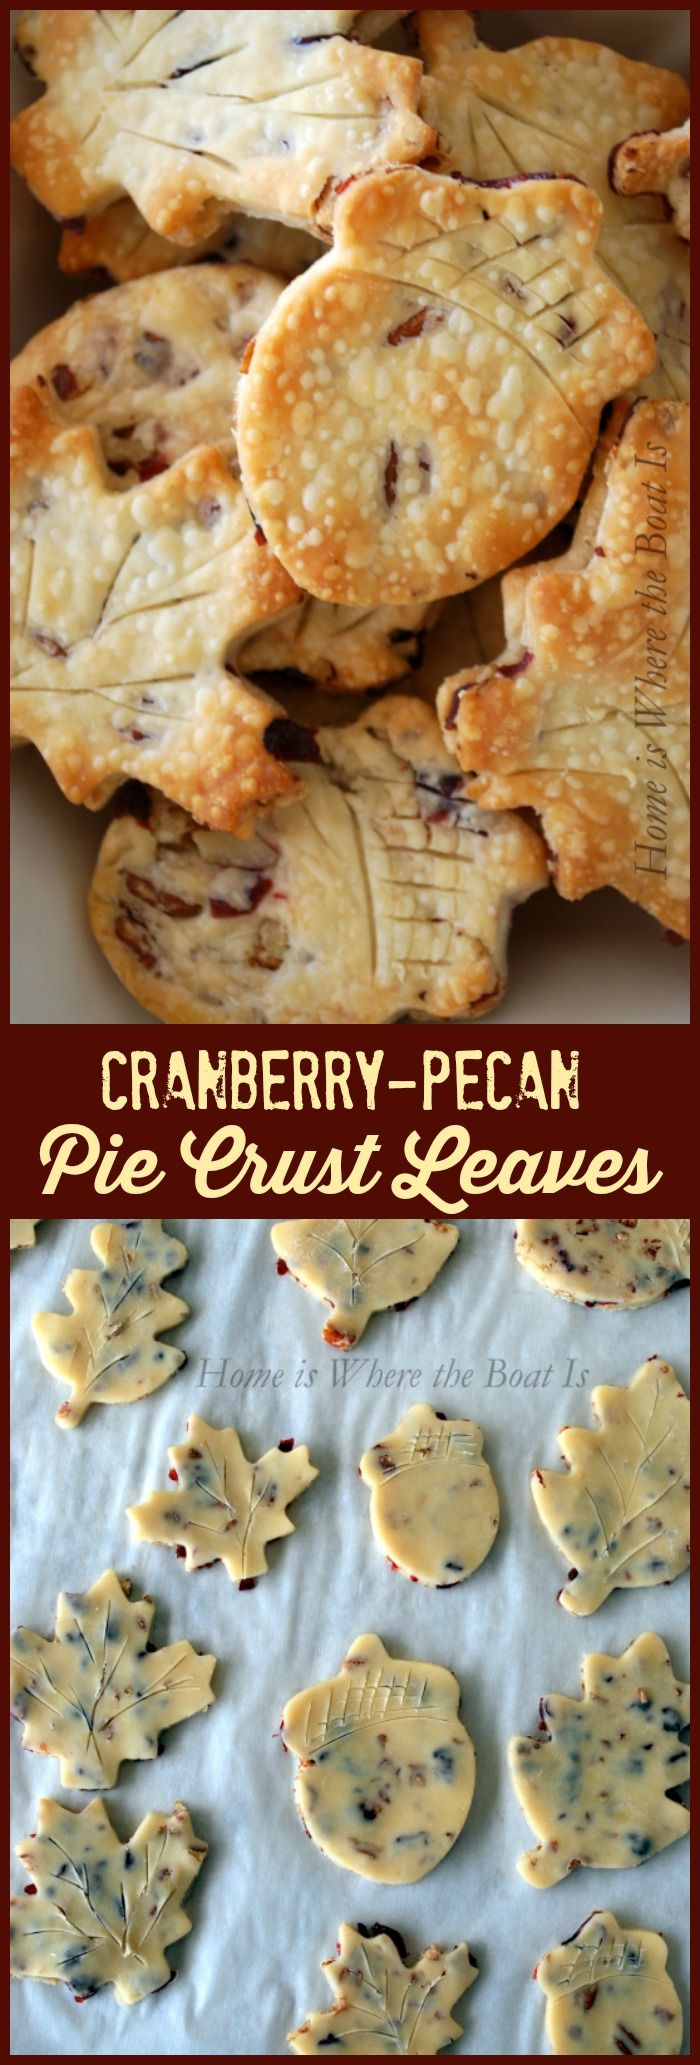 Cranberry-Pecan Pie Crust Leaves, only 3 ingredients for dressing up your left…